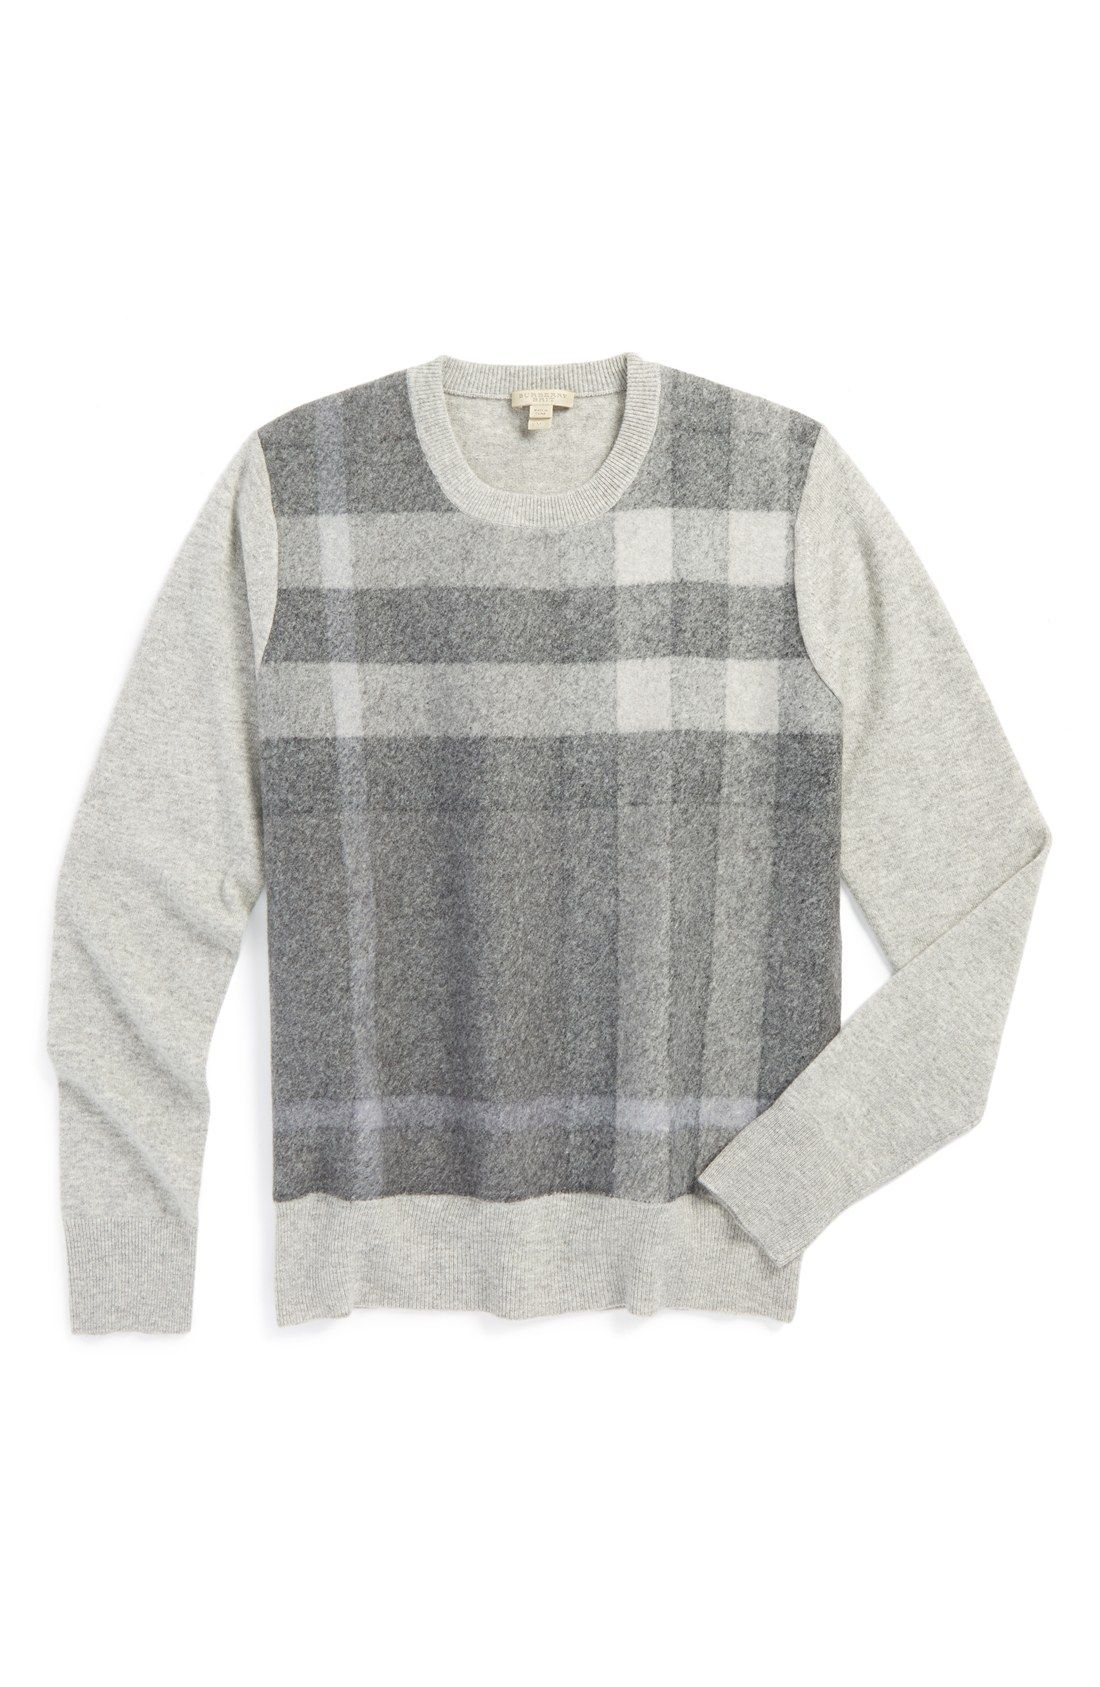 Cold Weather Basic Layer A Crewneck Sweater With A Collared Shirt